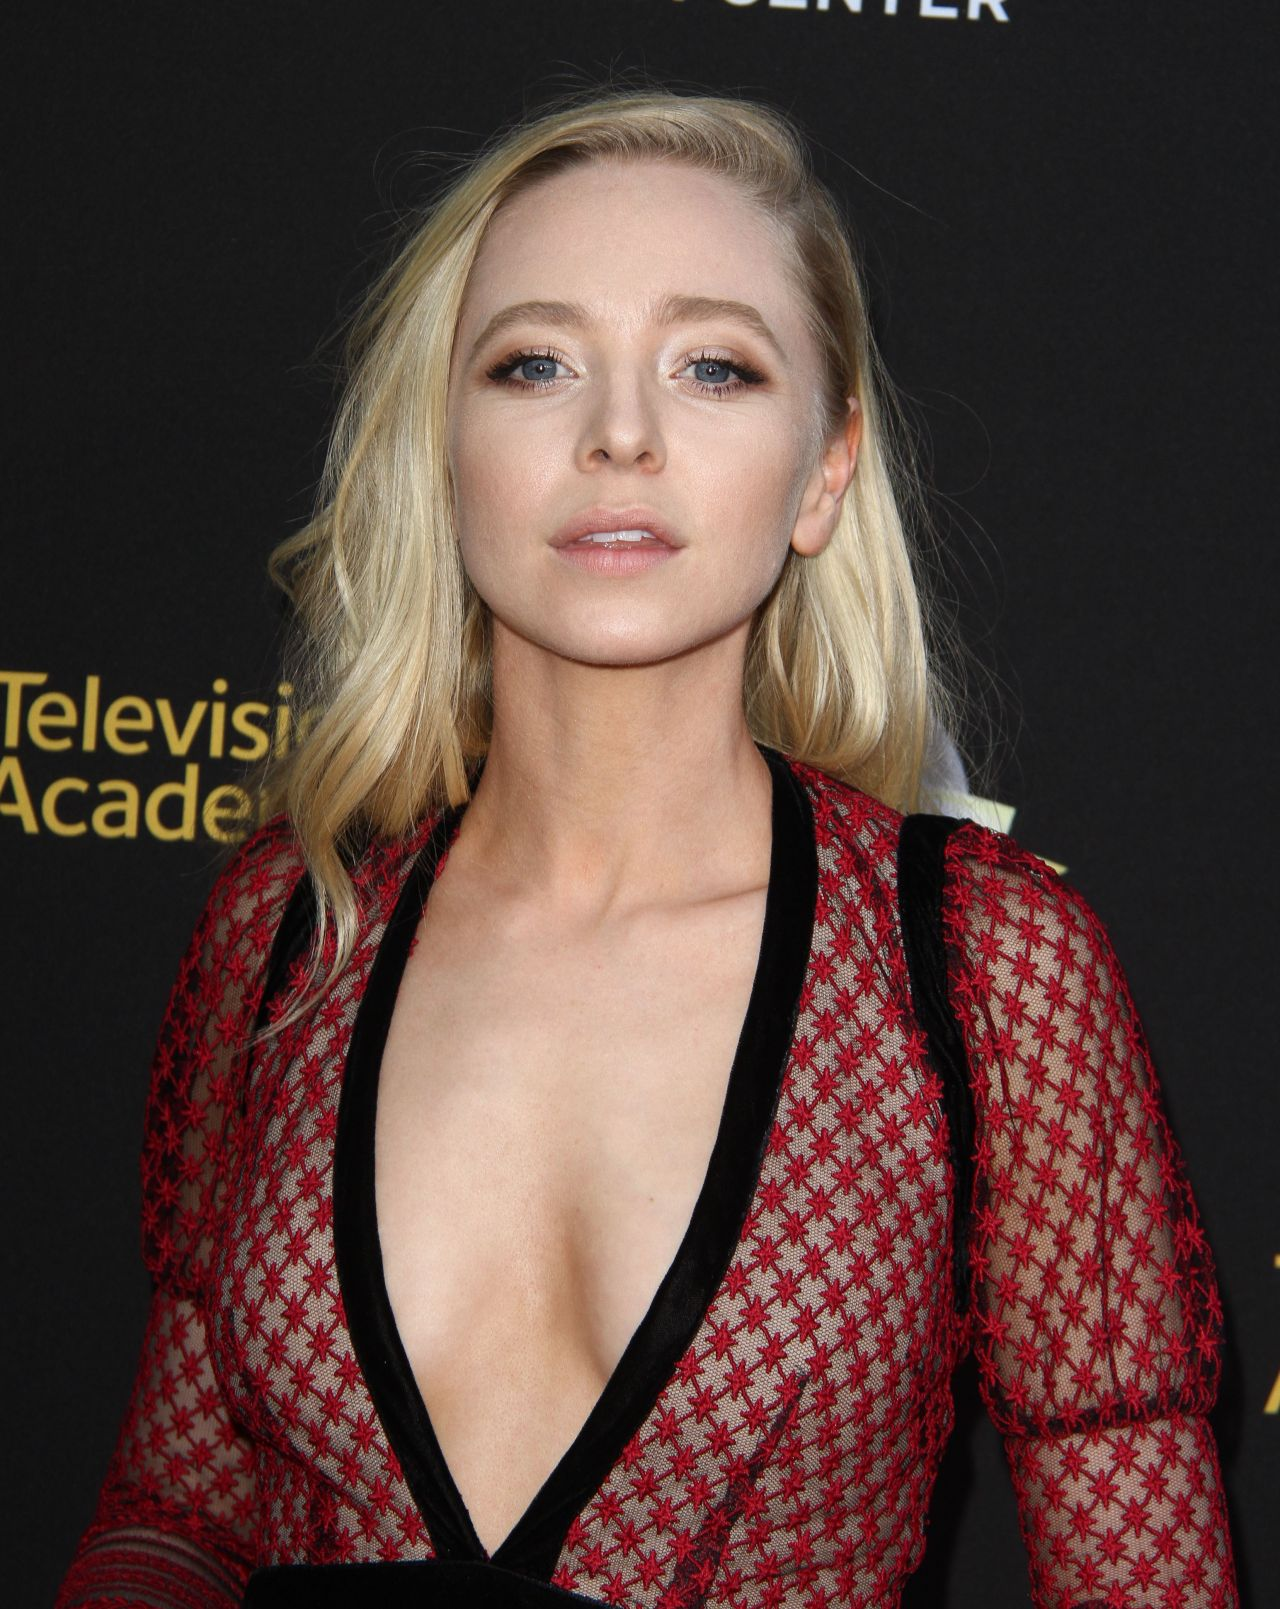 Television Academy 70th Anniversary